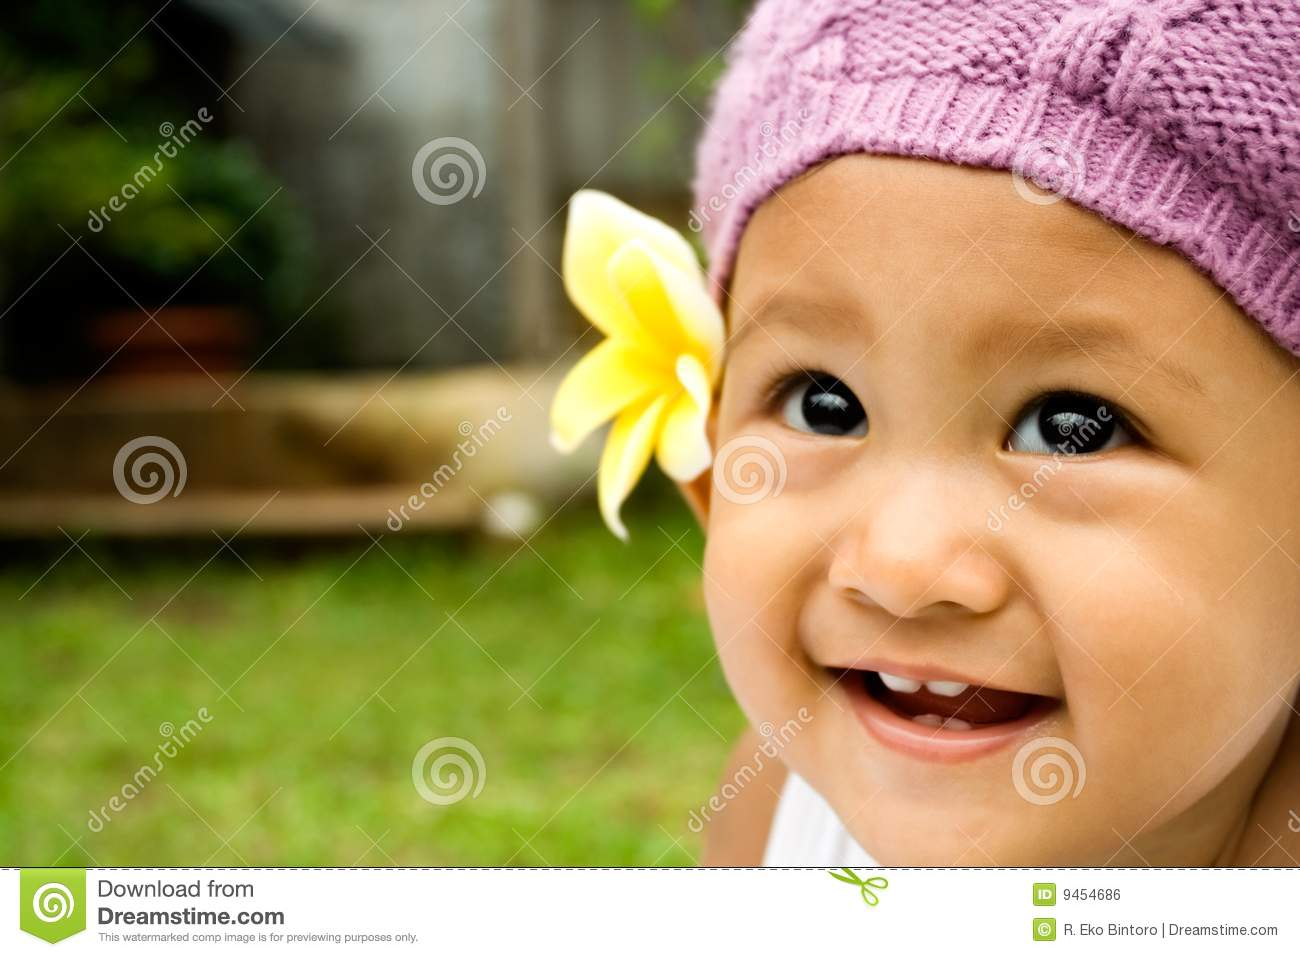 Baby Cute Smile Stock Photo. Image Of Portrait, Asian